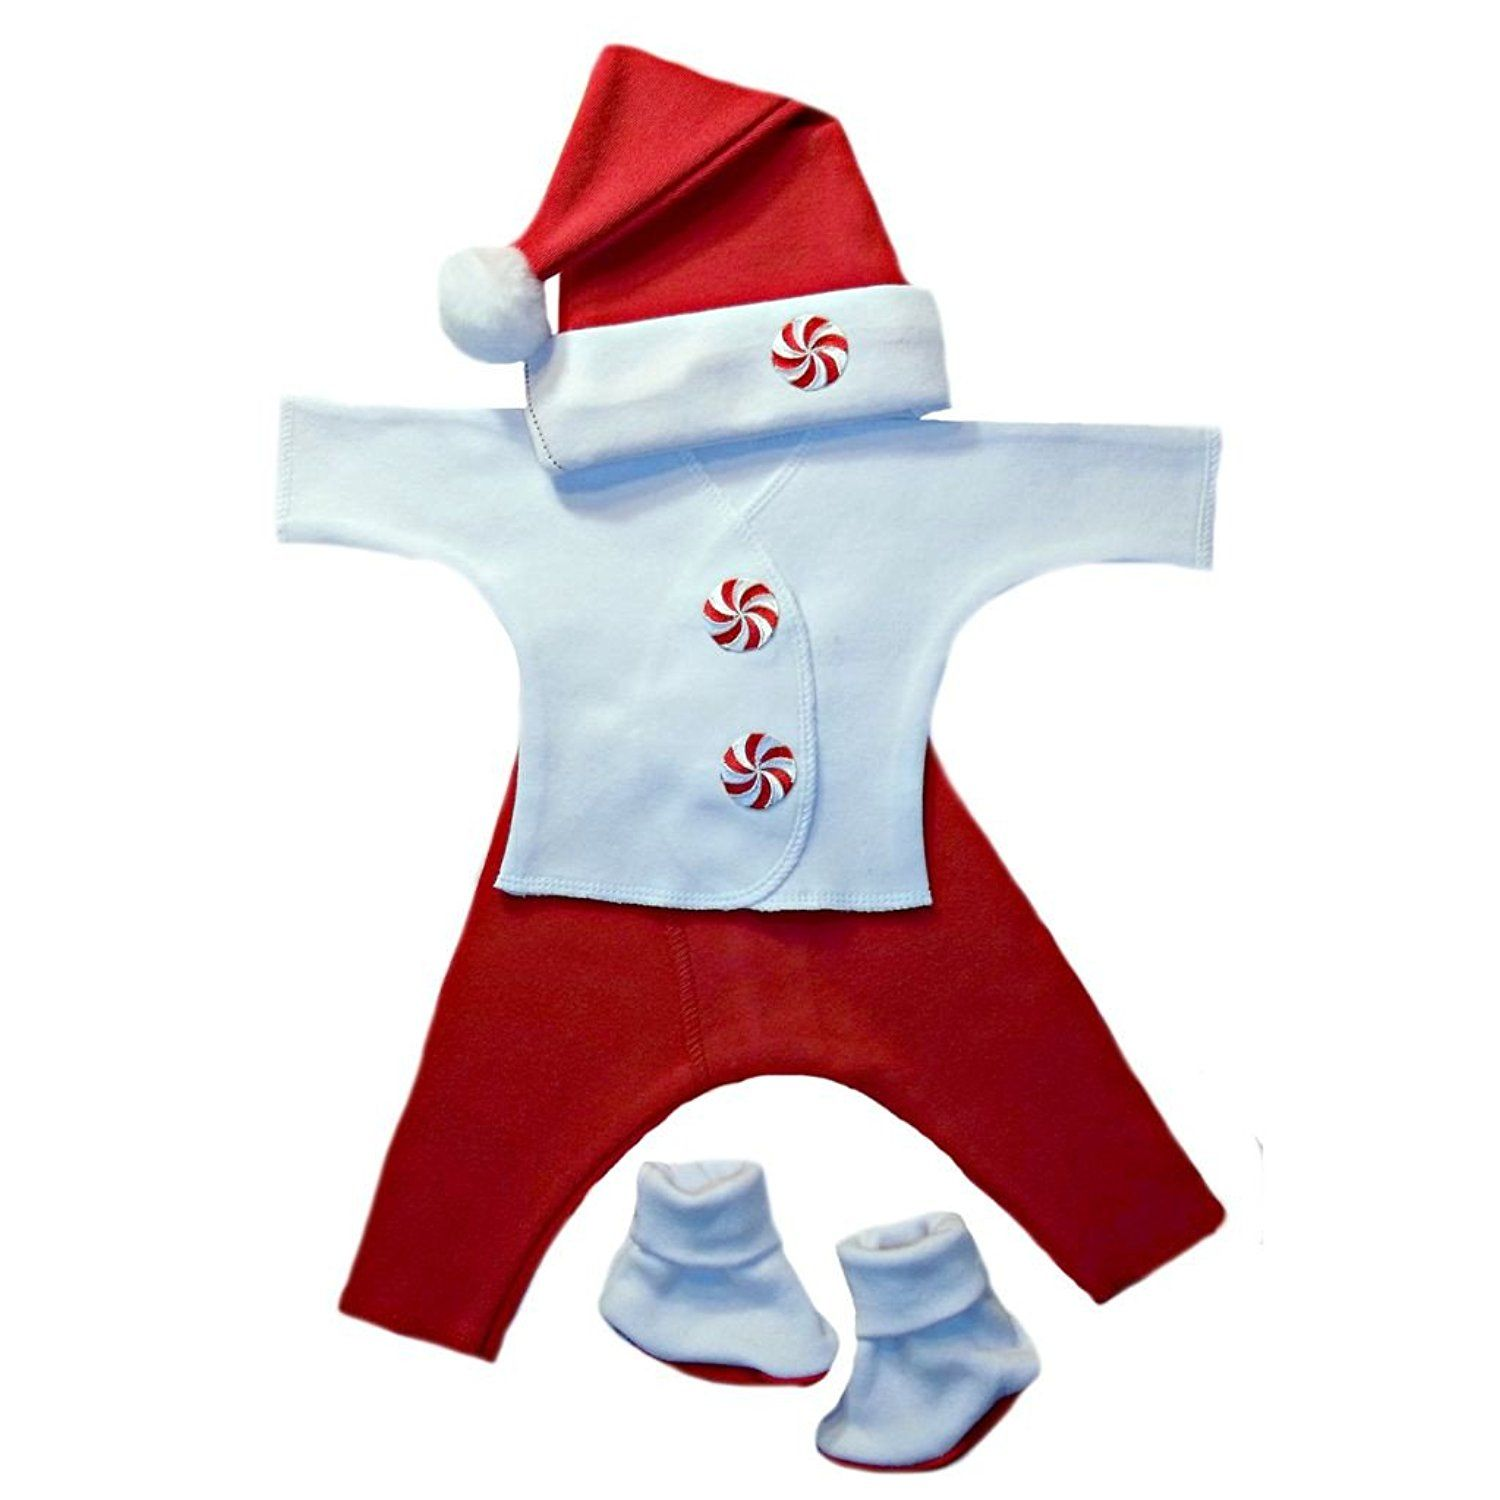 06288cd8e Jacqui's Unisex Baby Red Peppermint Candy Clothing Set, Small Newborn